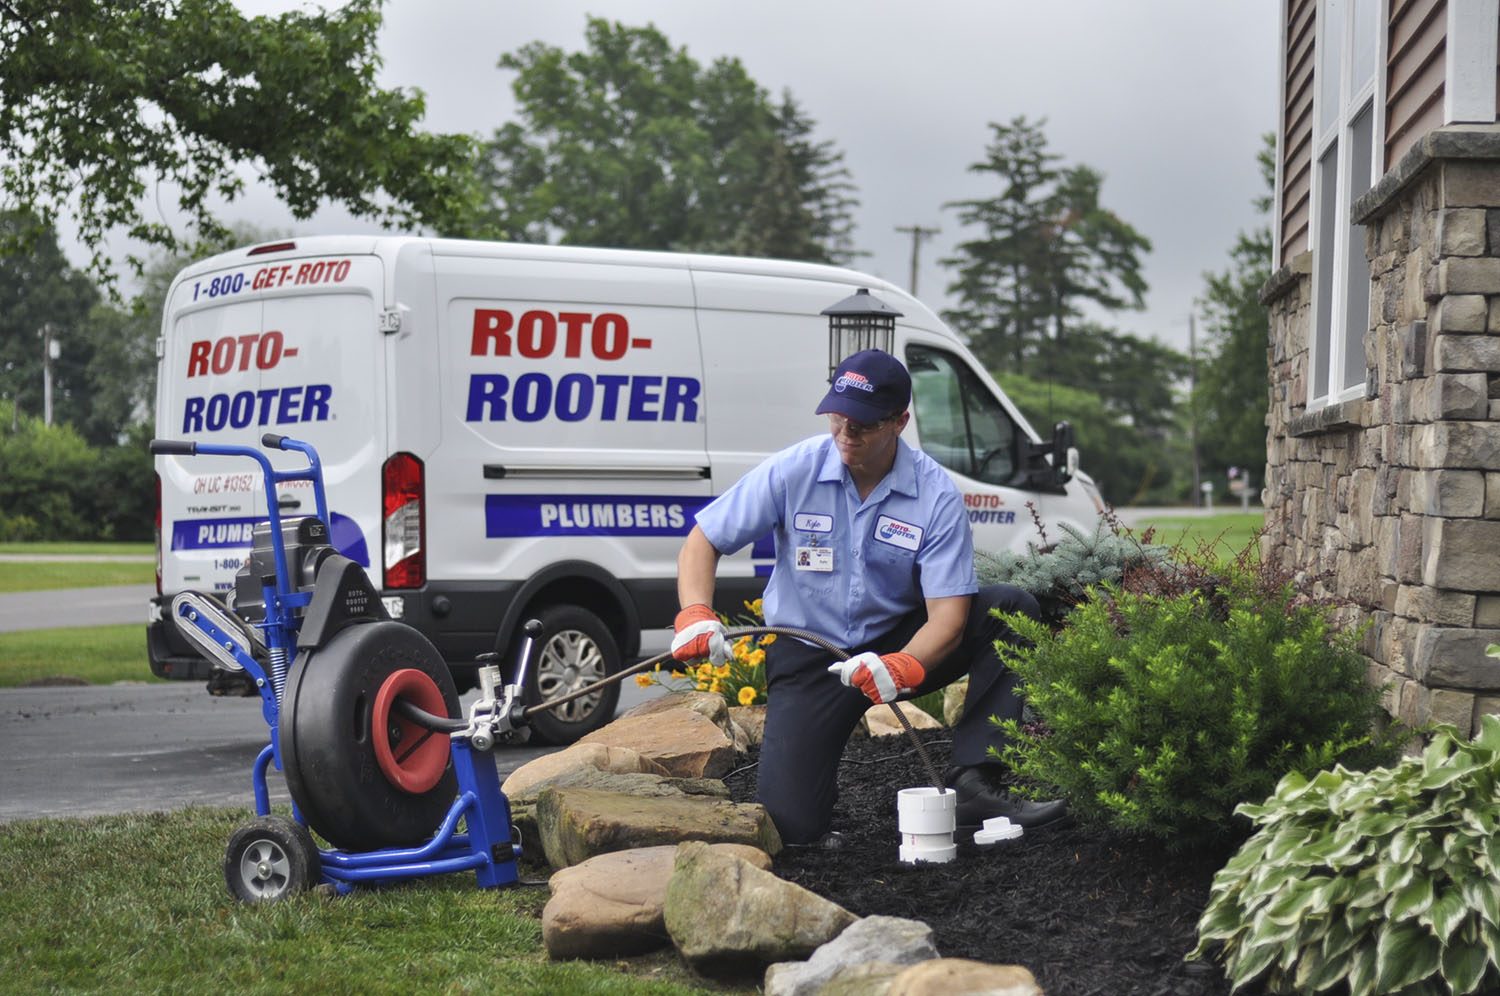 Roto-Rooter Acquires Franchise Operator, Adds 450 Fleet Vehicles